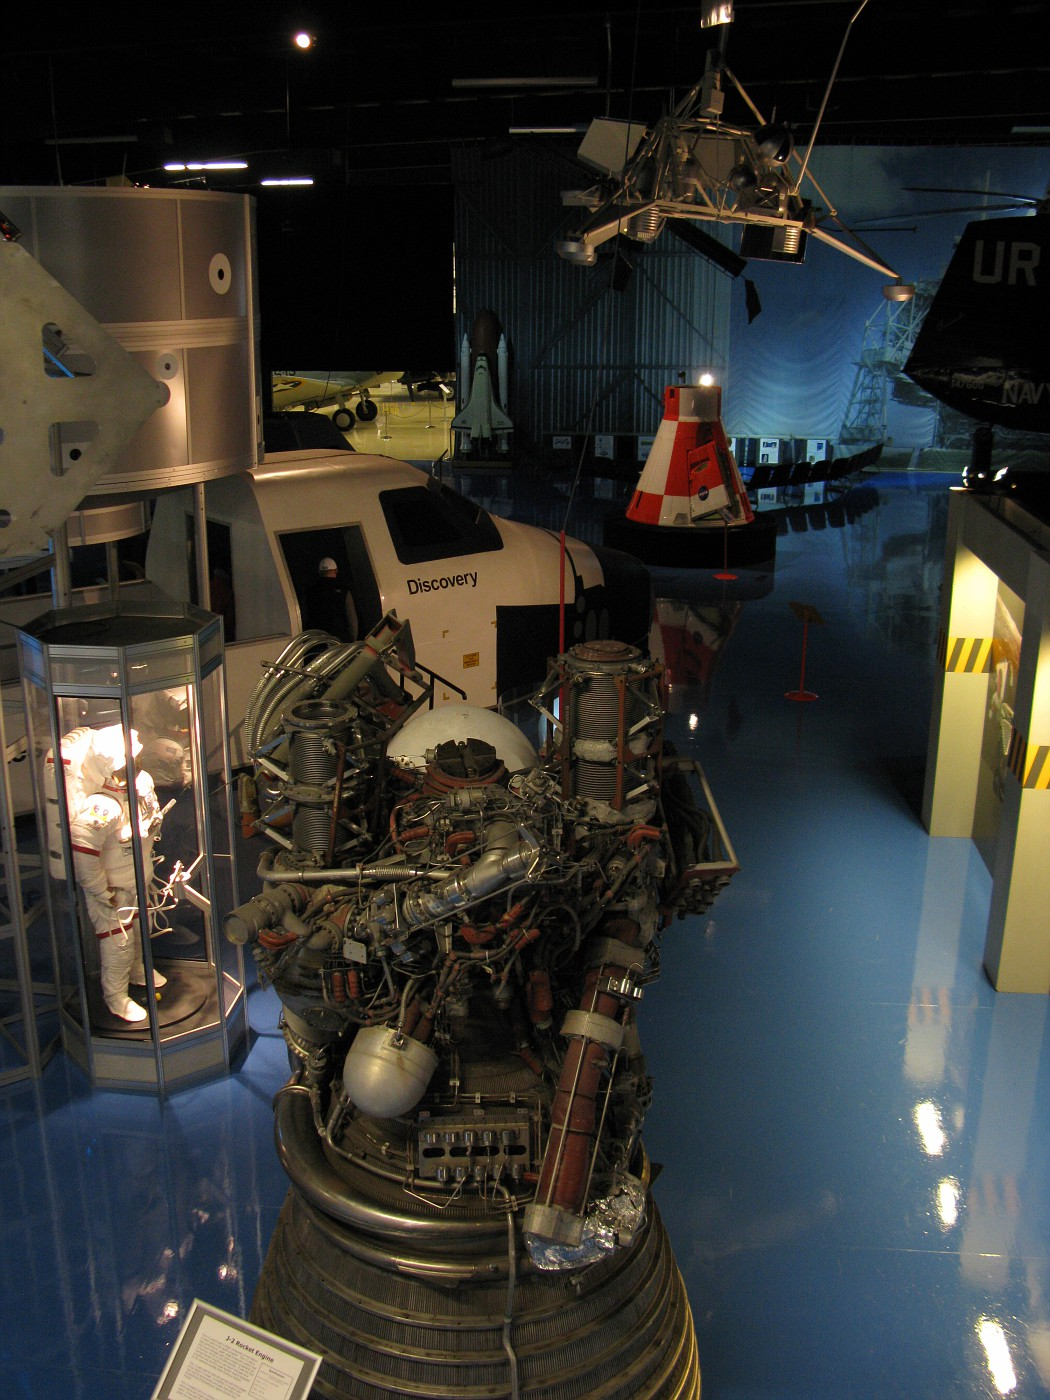 View of the space exhibit